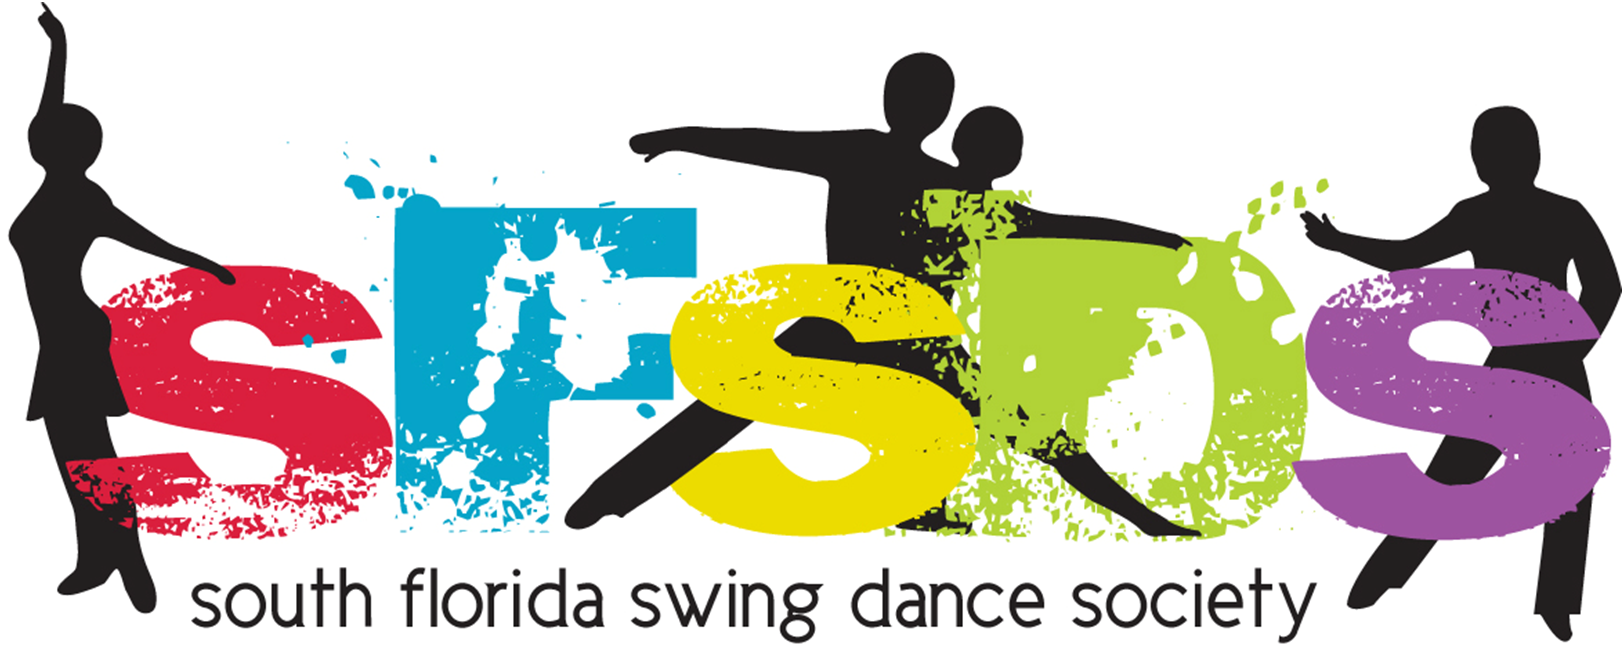 South Florida Swing Dance Society Monthly Dance - 1st Saturday of Every Month at Goldcoast Ballroom!!